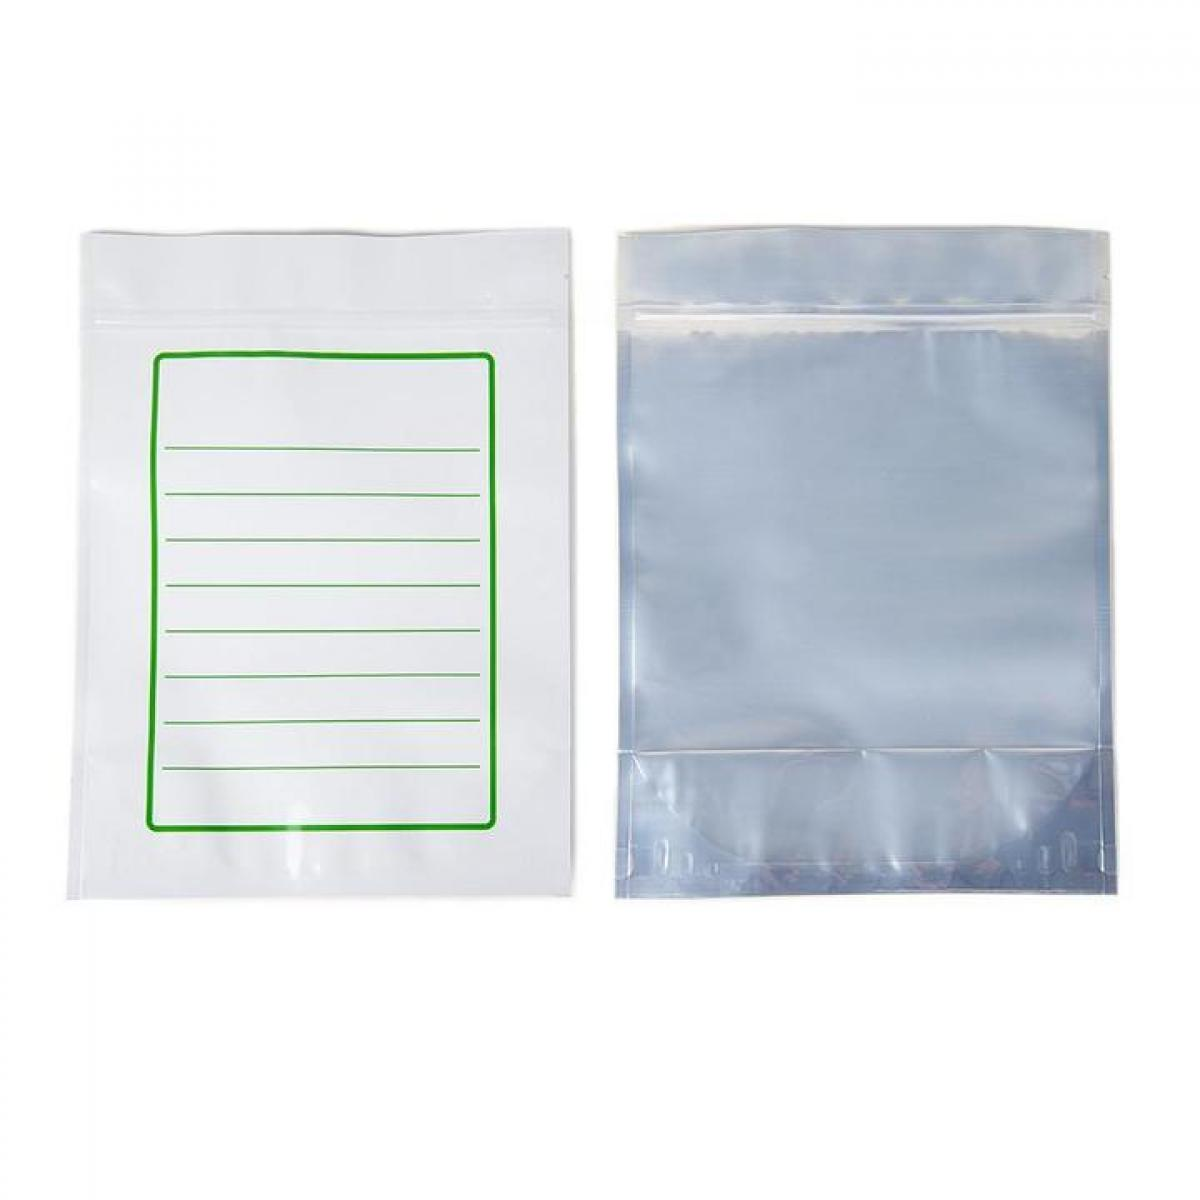 50x Mylar Bags (1/4lb Size) Loud Lock Compliant Quality